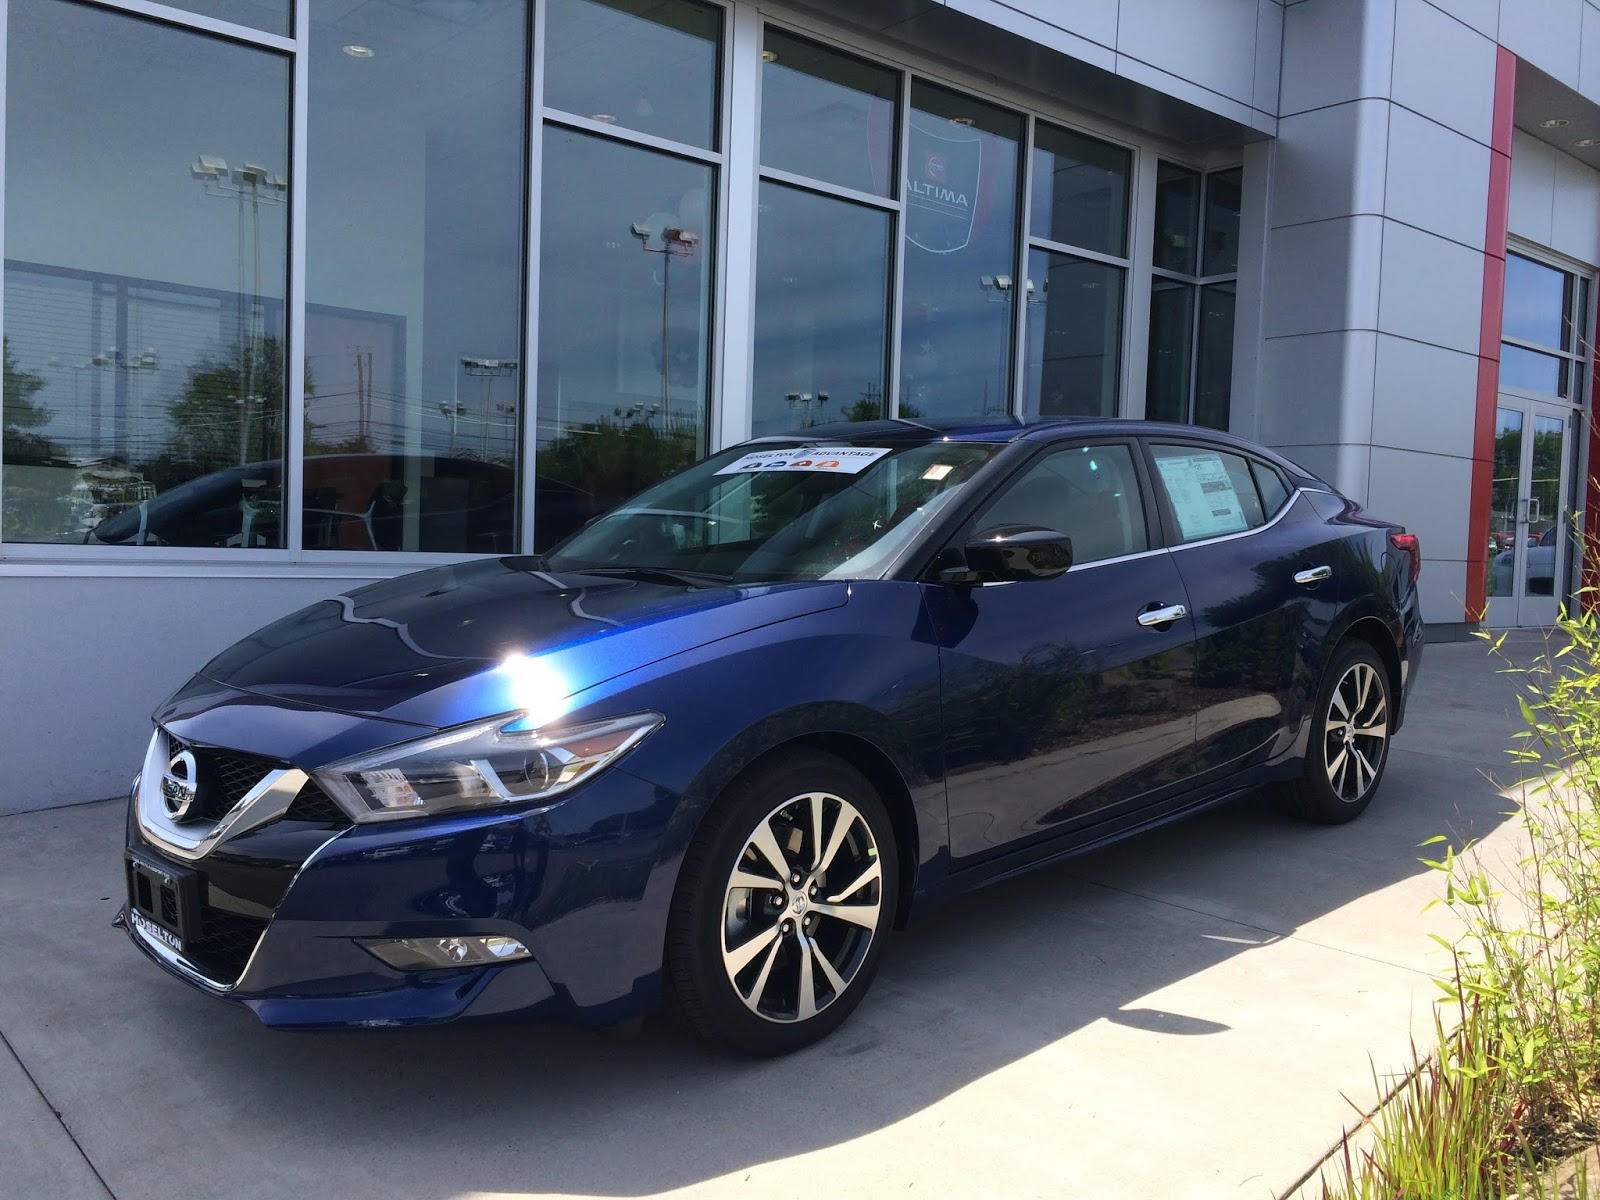 2016 Nissan Maxima Available At Hoselton Nissan In Rochester, New York